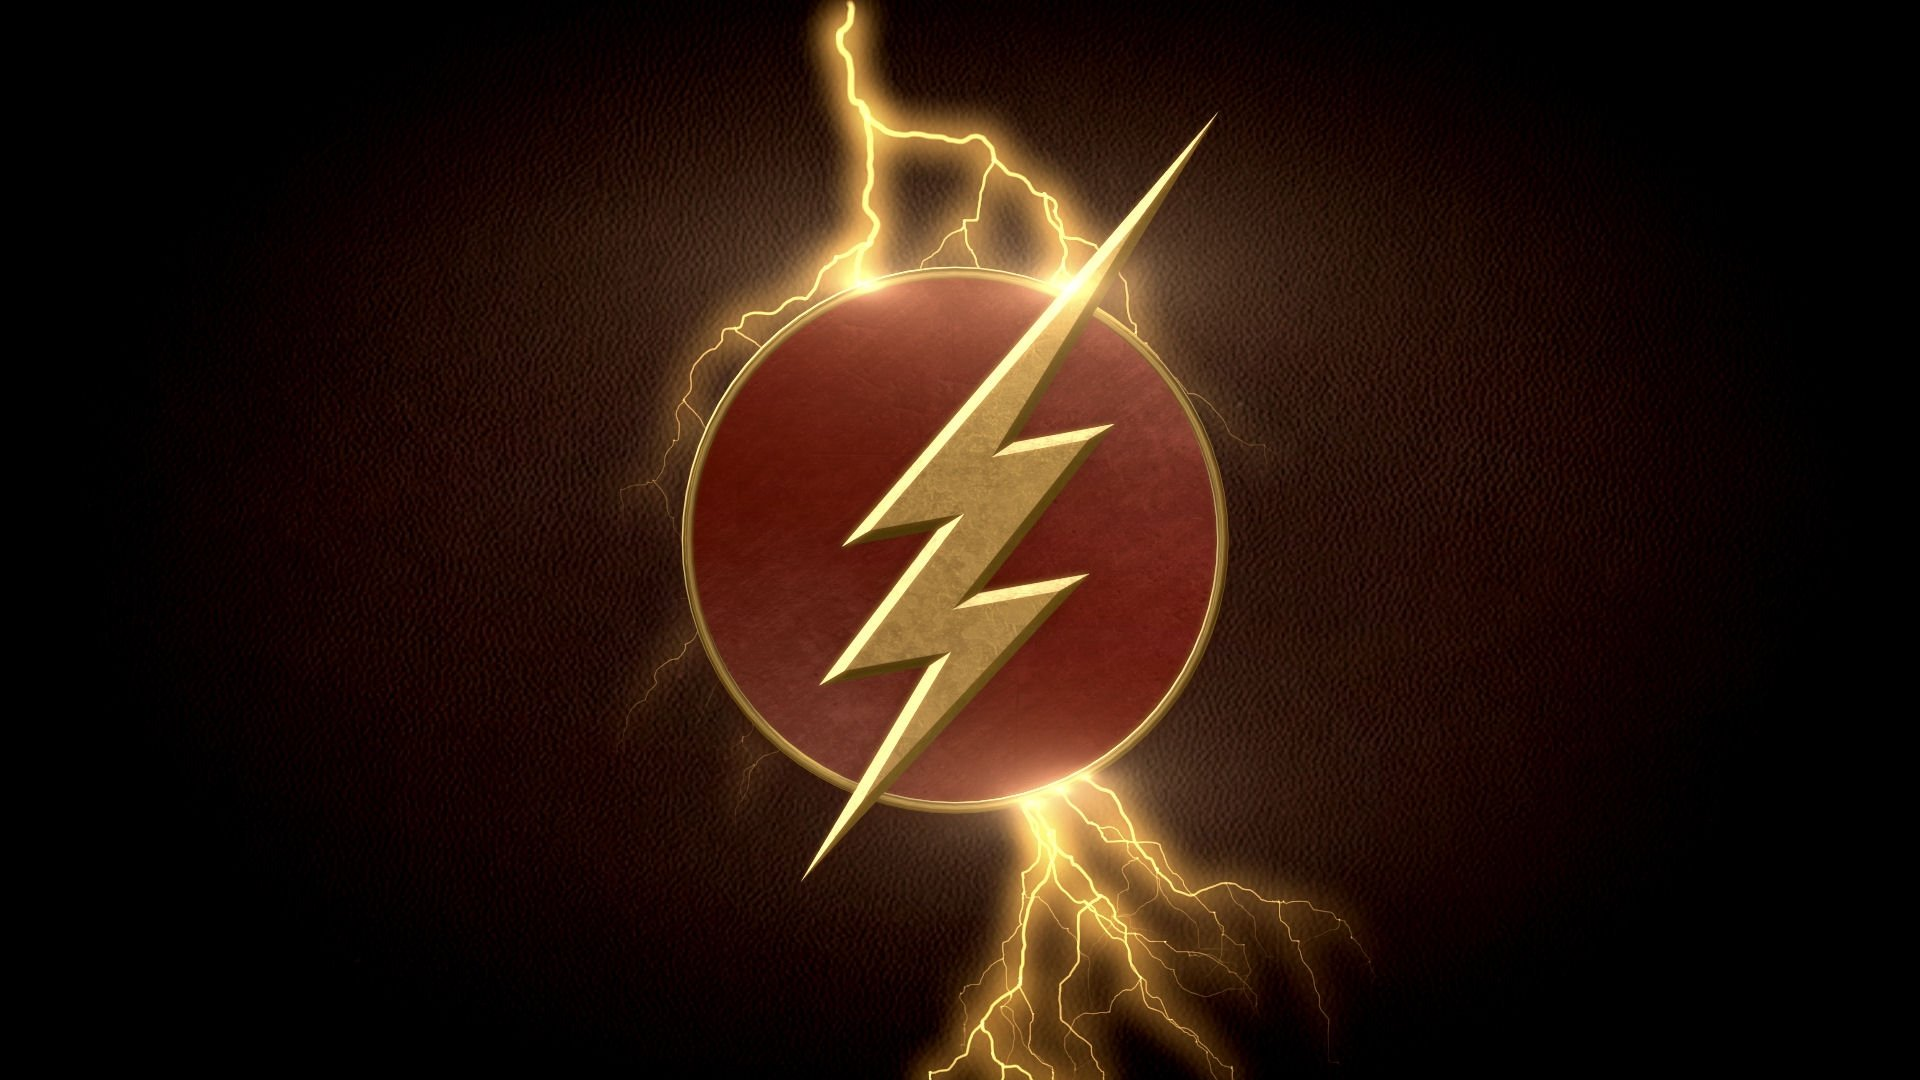 The Flash Blm Rehberi Tantm Wallpaper Kadro 1920x1080